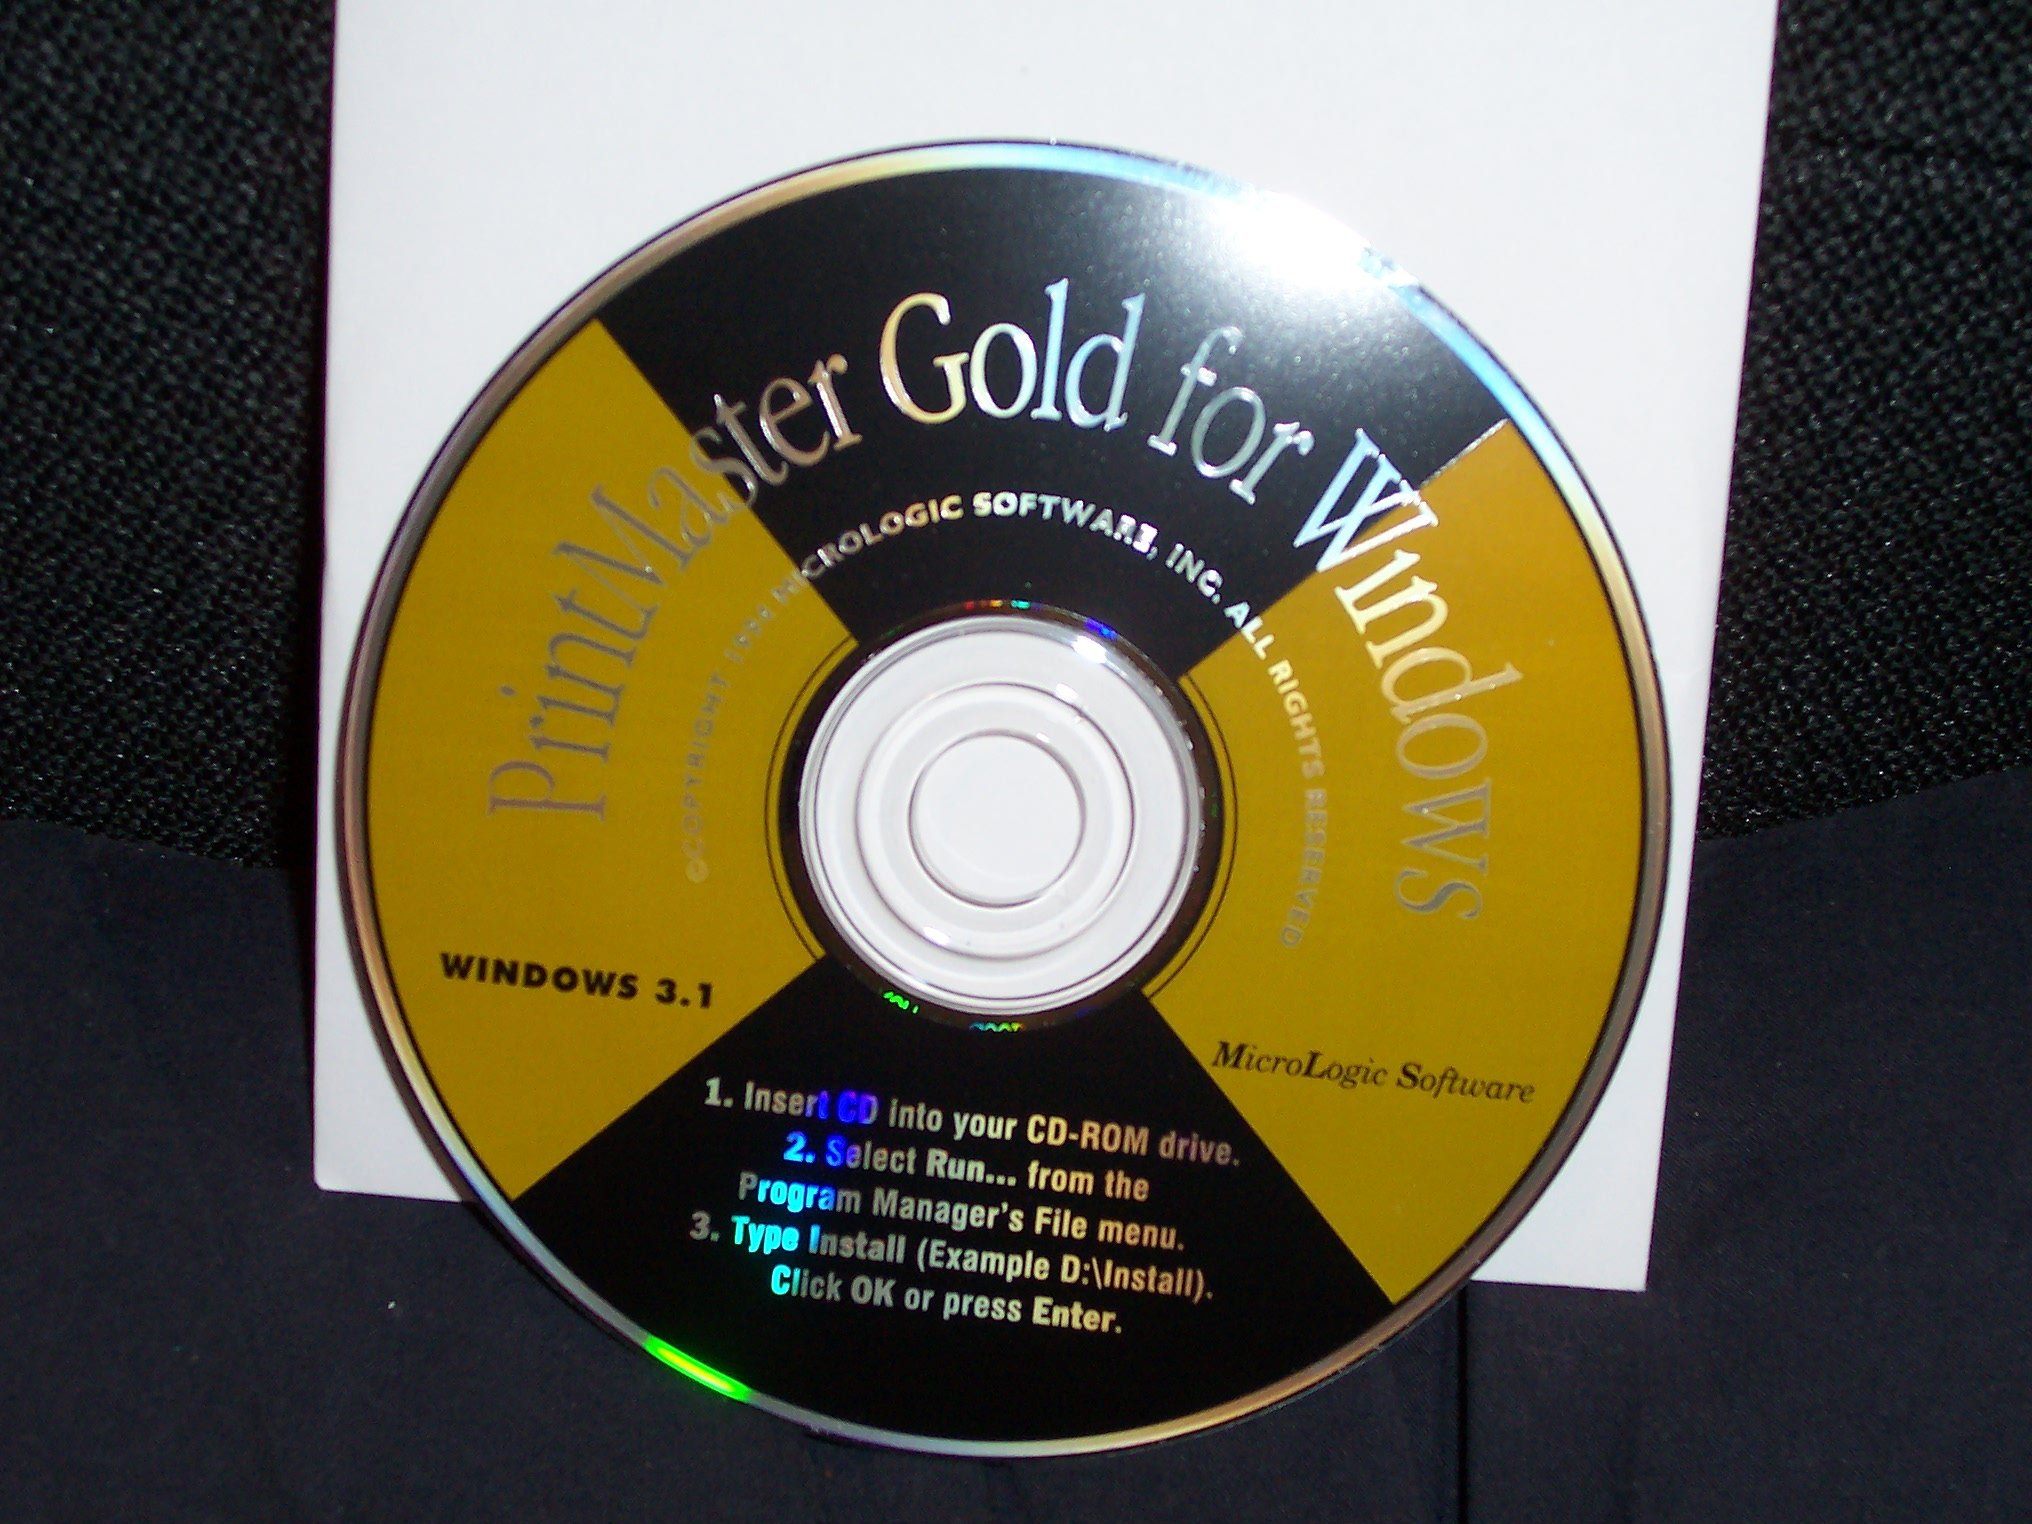 Printmaster Gold Classic for Windows 3.1 or Higher by SoftKey